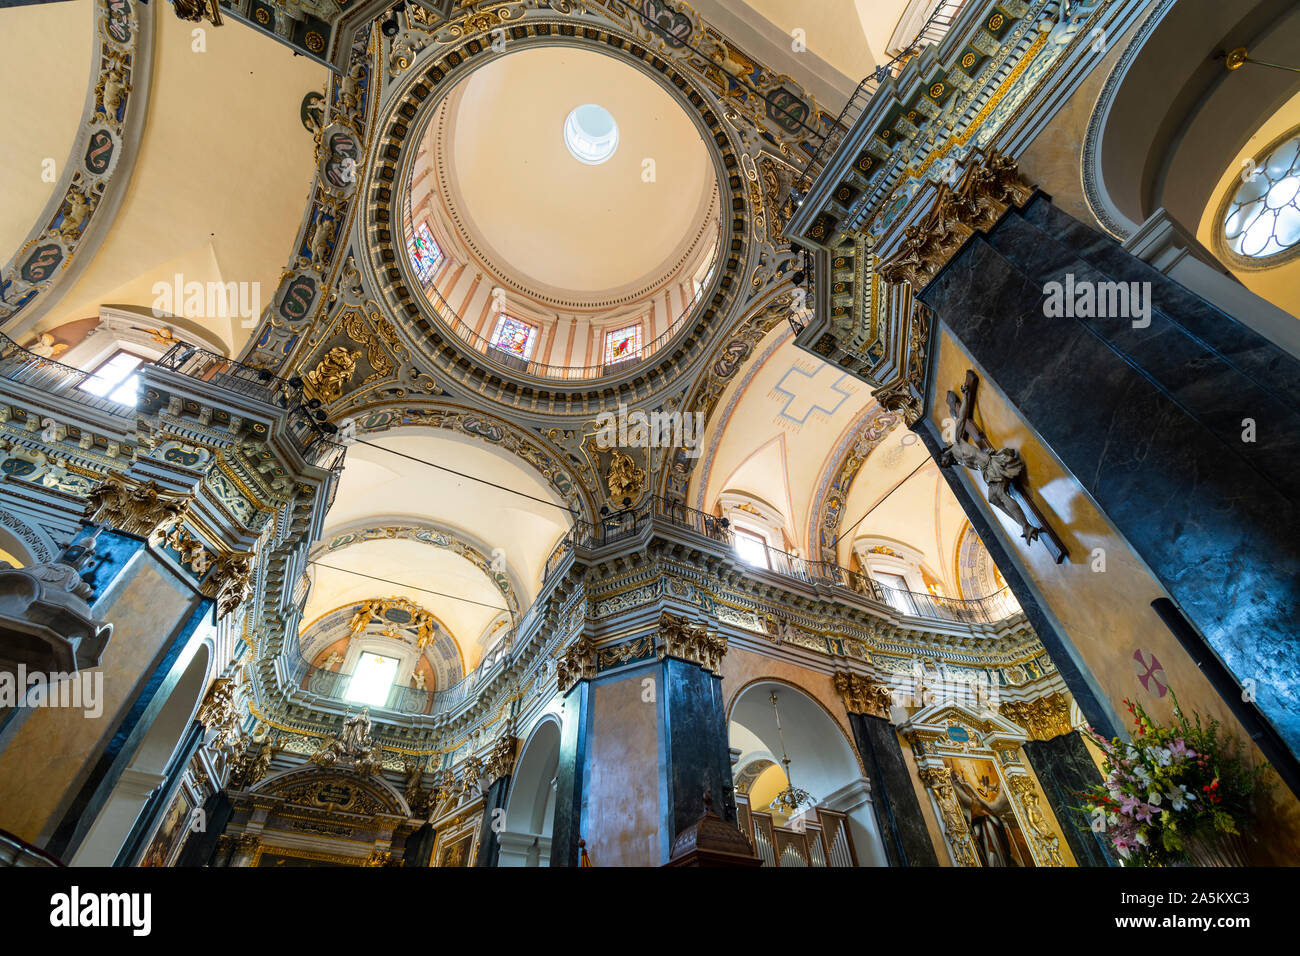 The baroque interior of the Sainte-Reparate or Nice Cathedral including artwork, chapels and the dome. Stock Photo